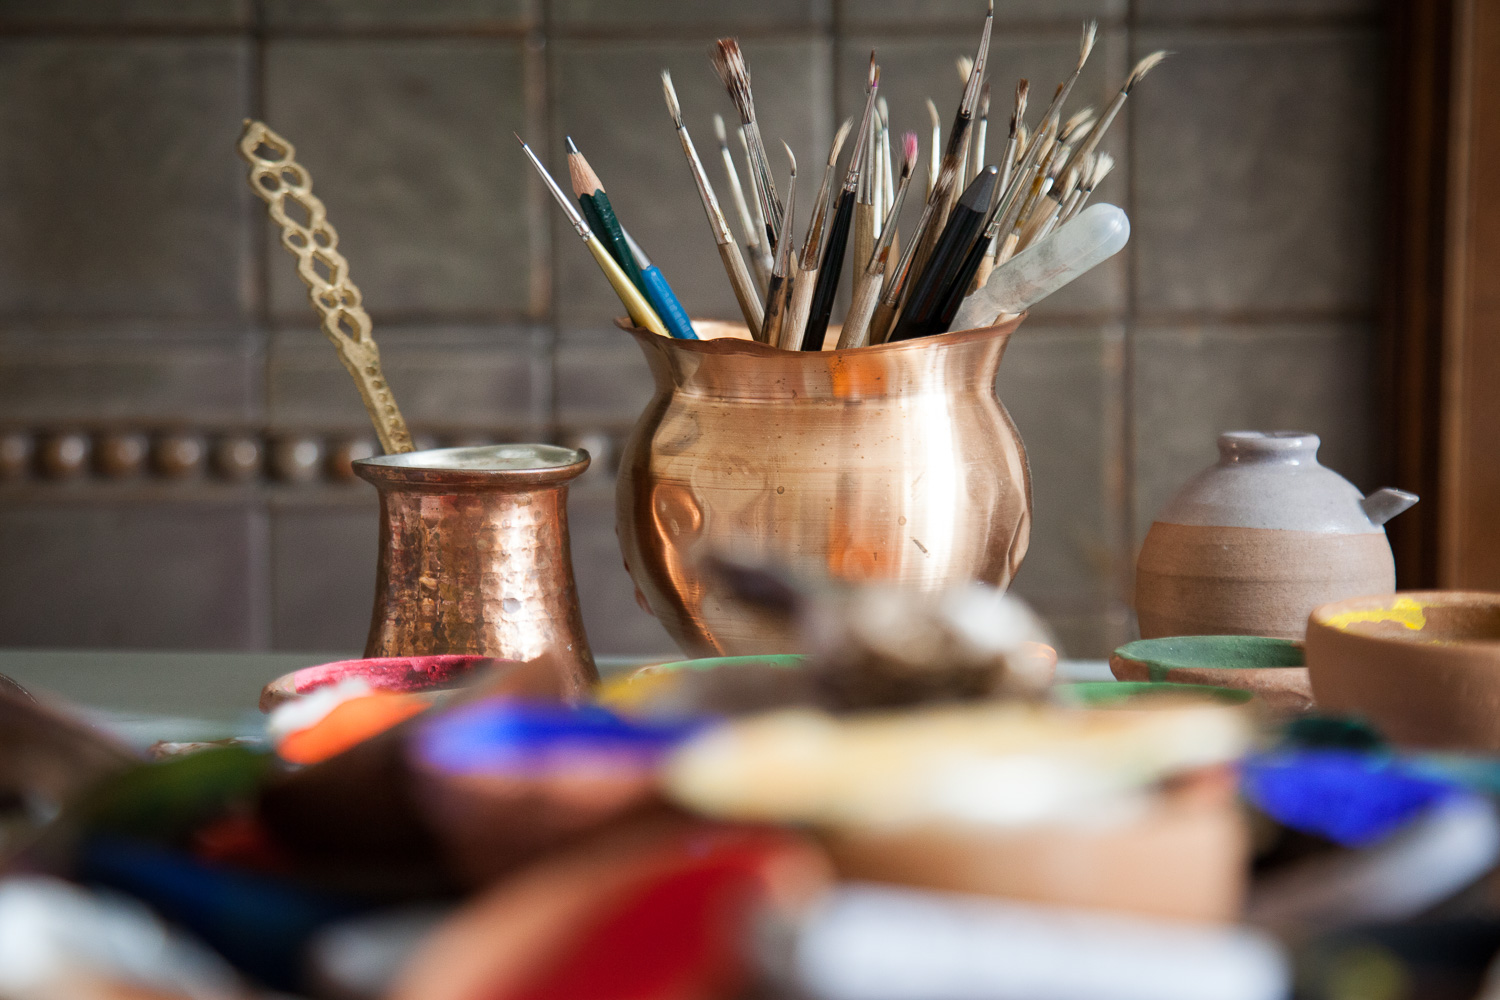 Water containers for mixing and working, an endless supply of brushes, pencils and blades are used to produce such fine detail.